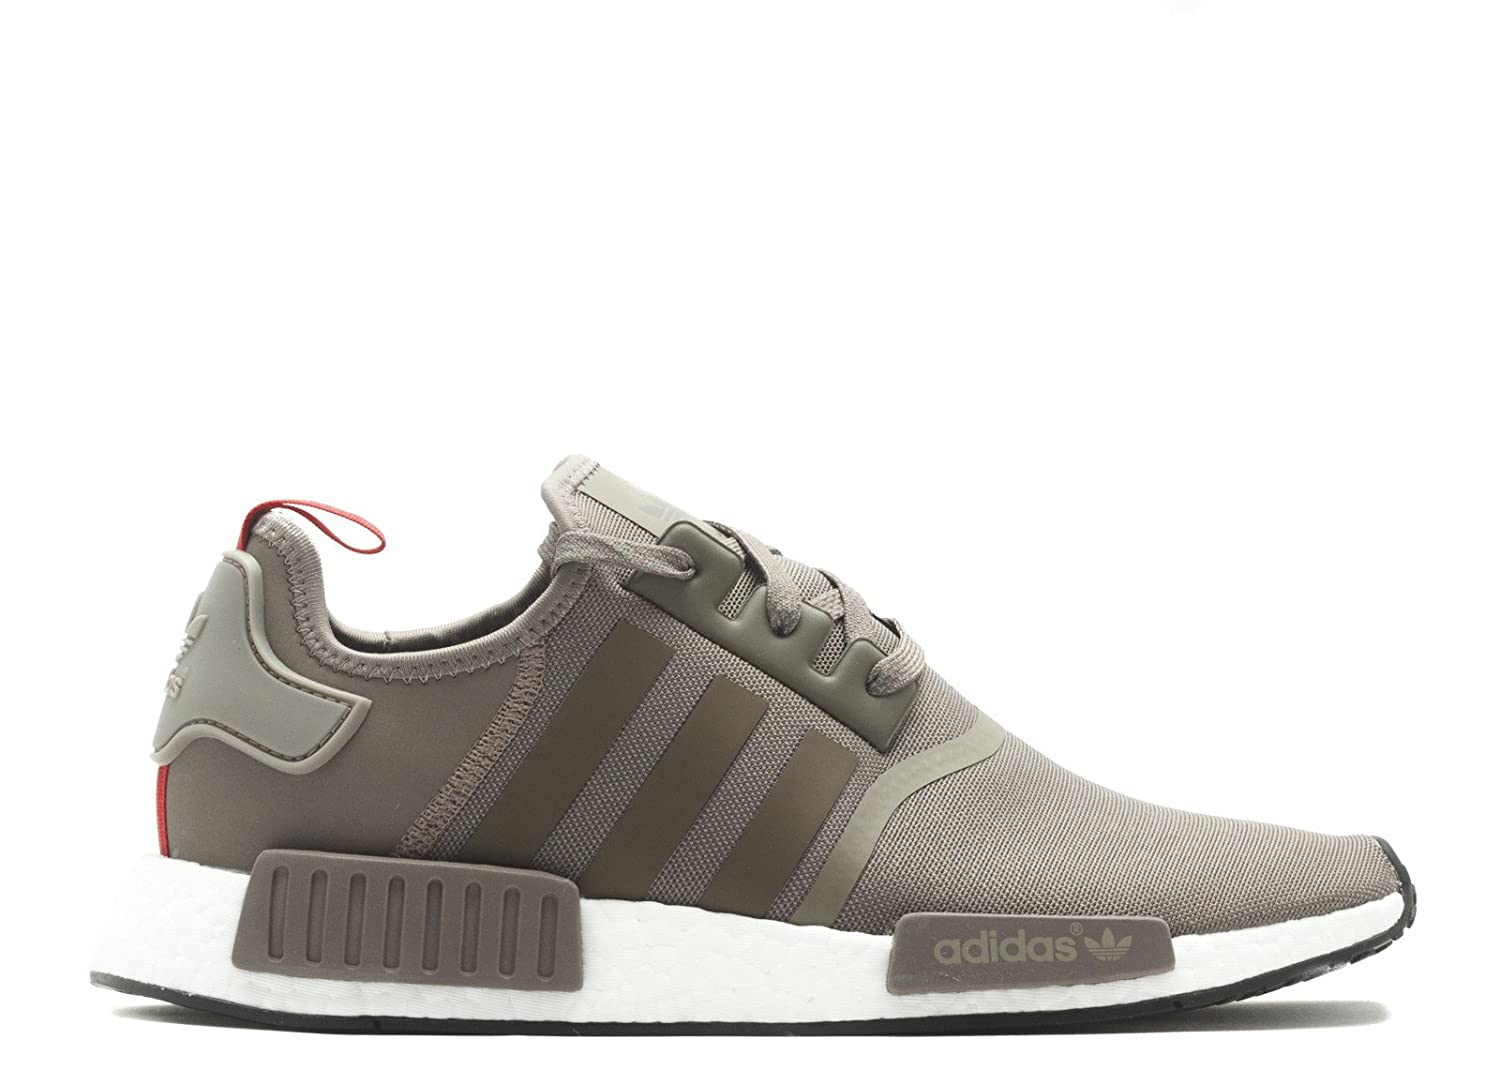 a327a32142324 ADIDAS NMDR1 - S81881 - Size 7